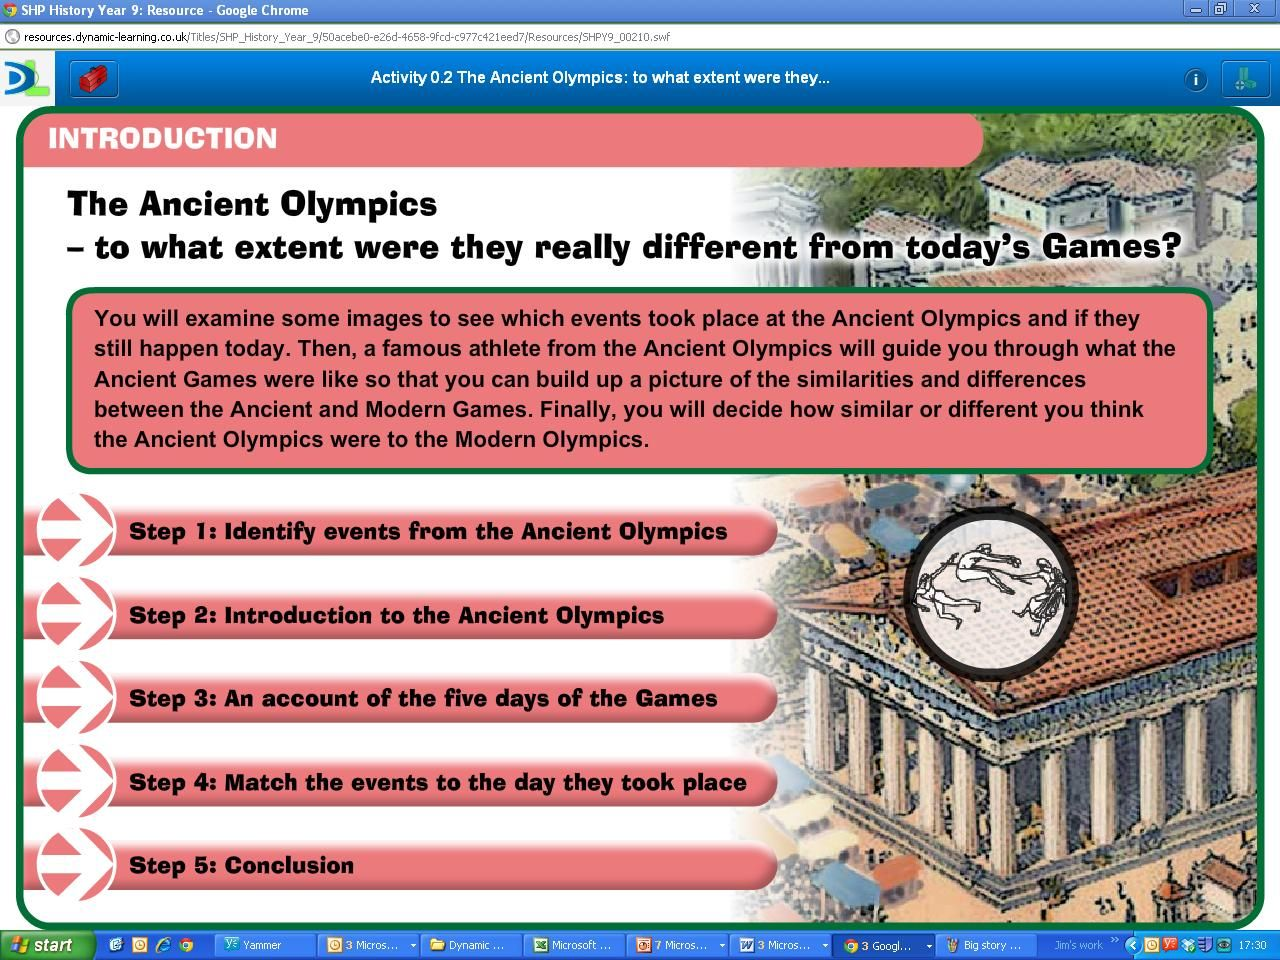 0.2 Compare the modern and ancient Olympics using illustrations from ancient pottery